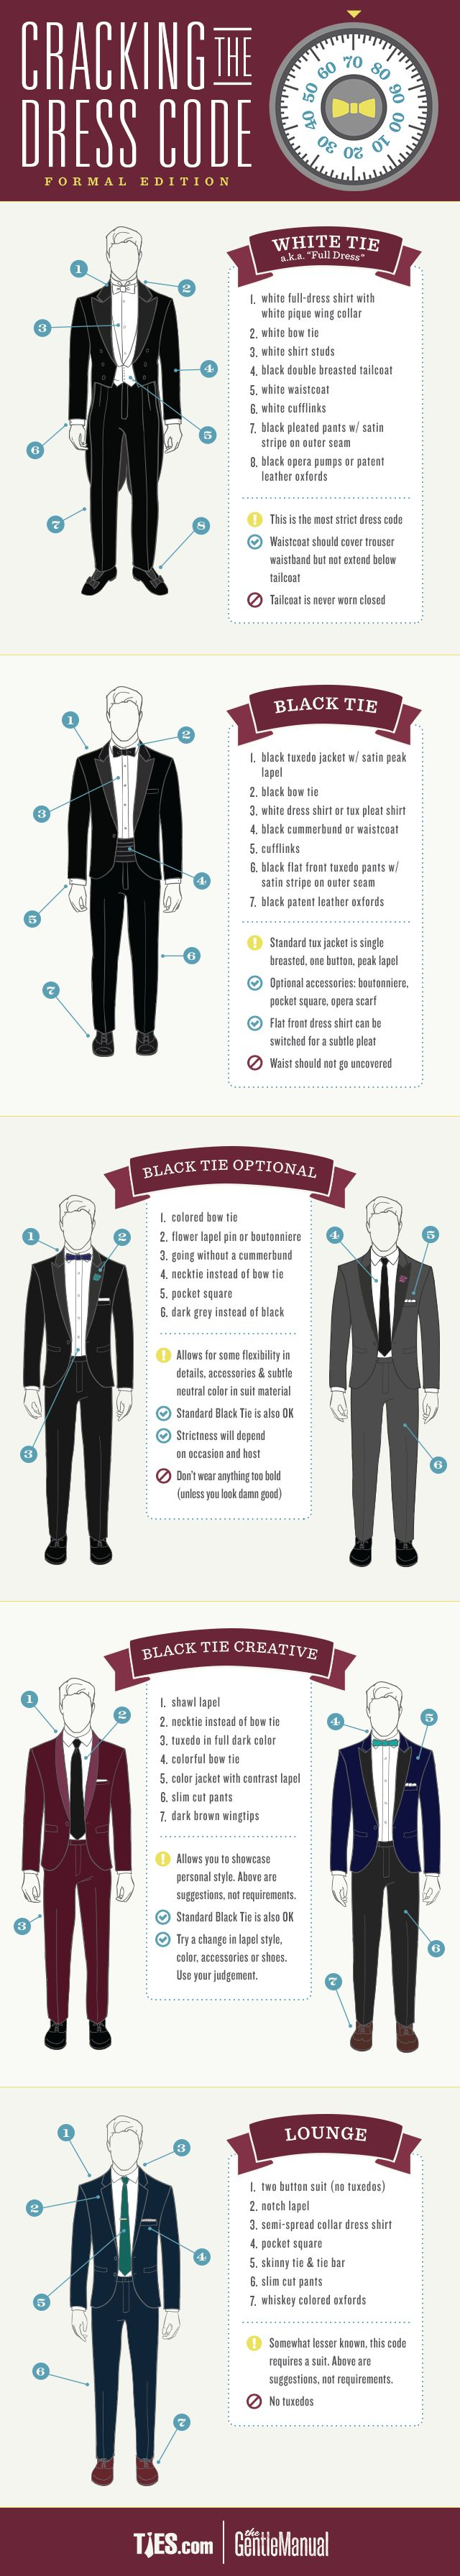 Cracking The Dress Code Formal Edition: An Infographic #dresscode #menstyle #RMRS #menswear | Raddest Men's Fashion Looks On The Internet: http://www.raddestlooks.org